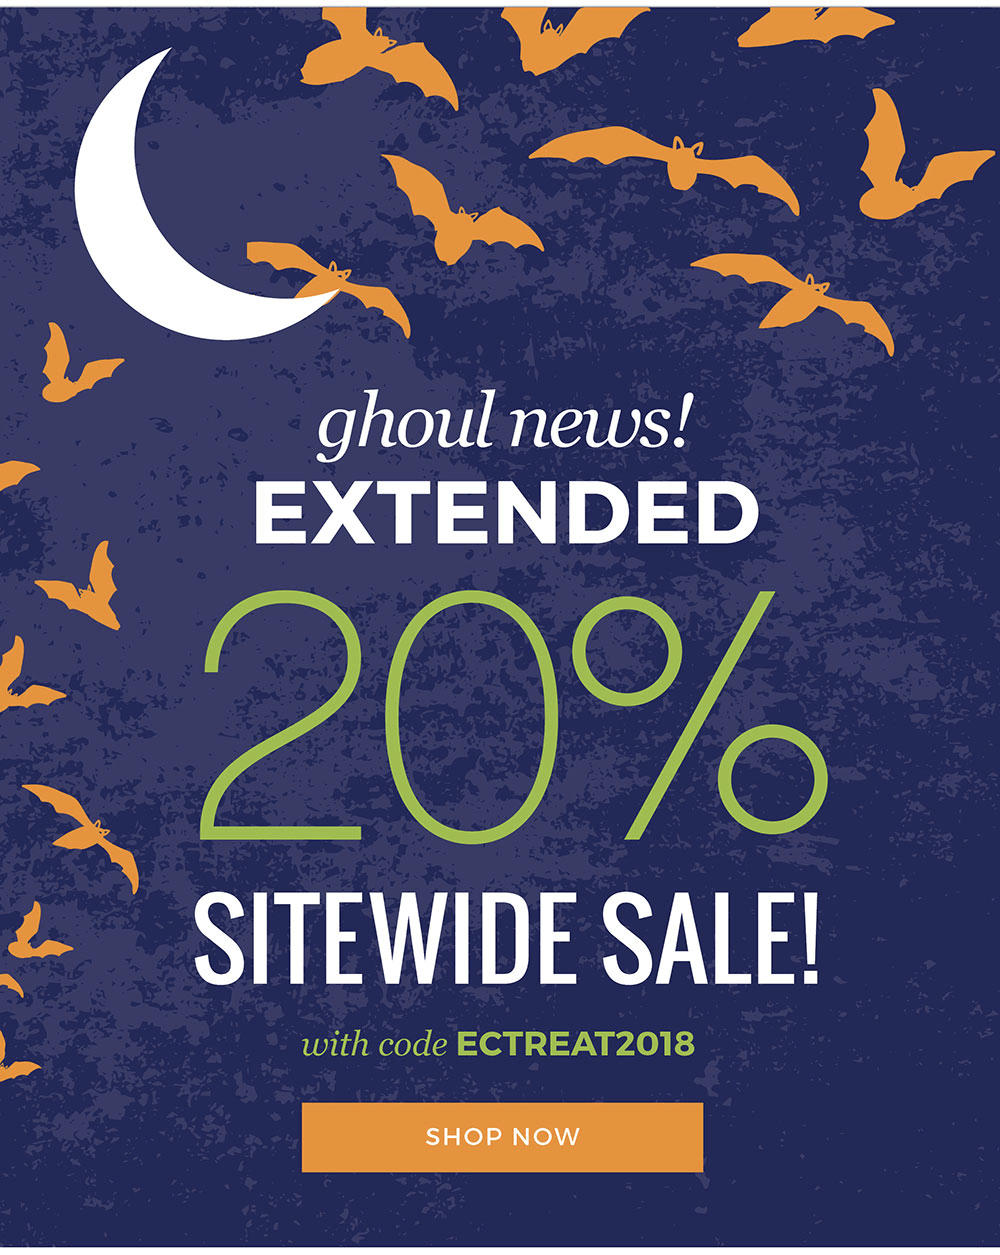 Erin Condren Surprise Flash Sale: Get 20% Off Sitewide! EXTENDED!